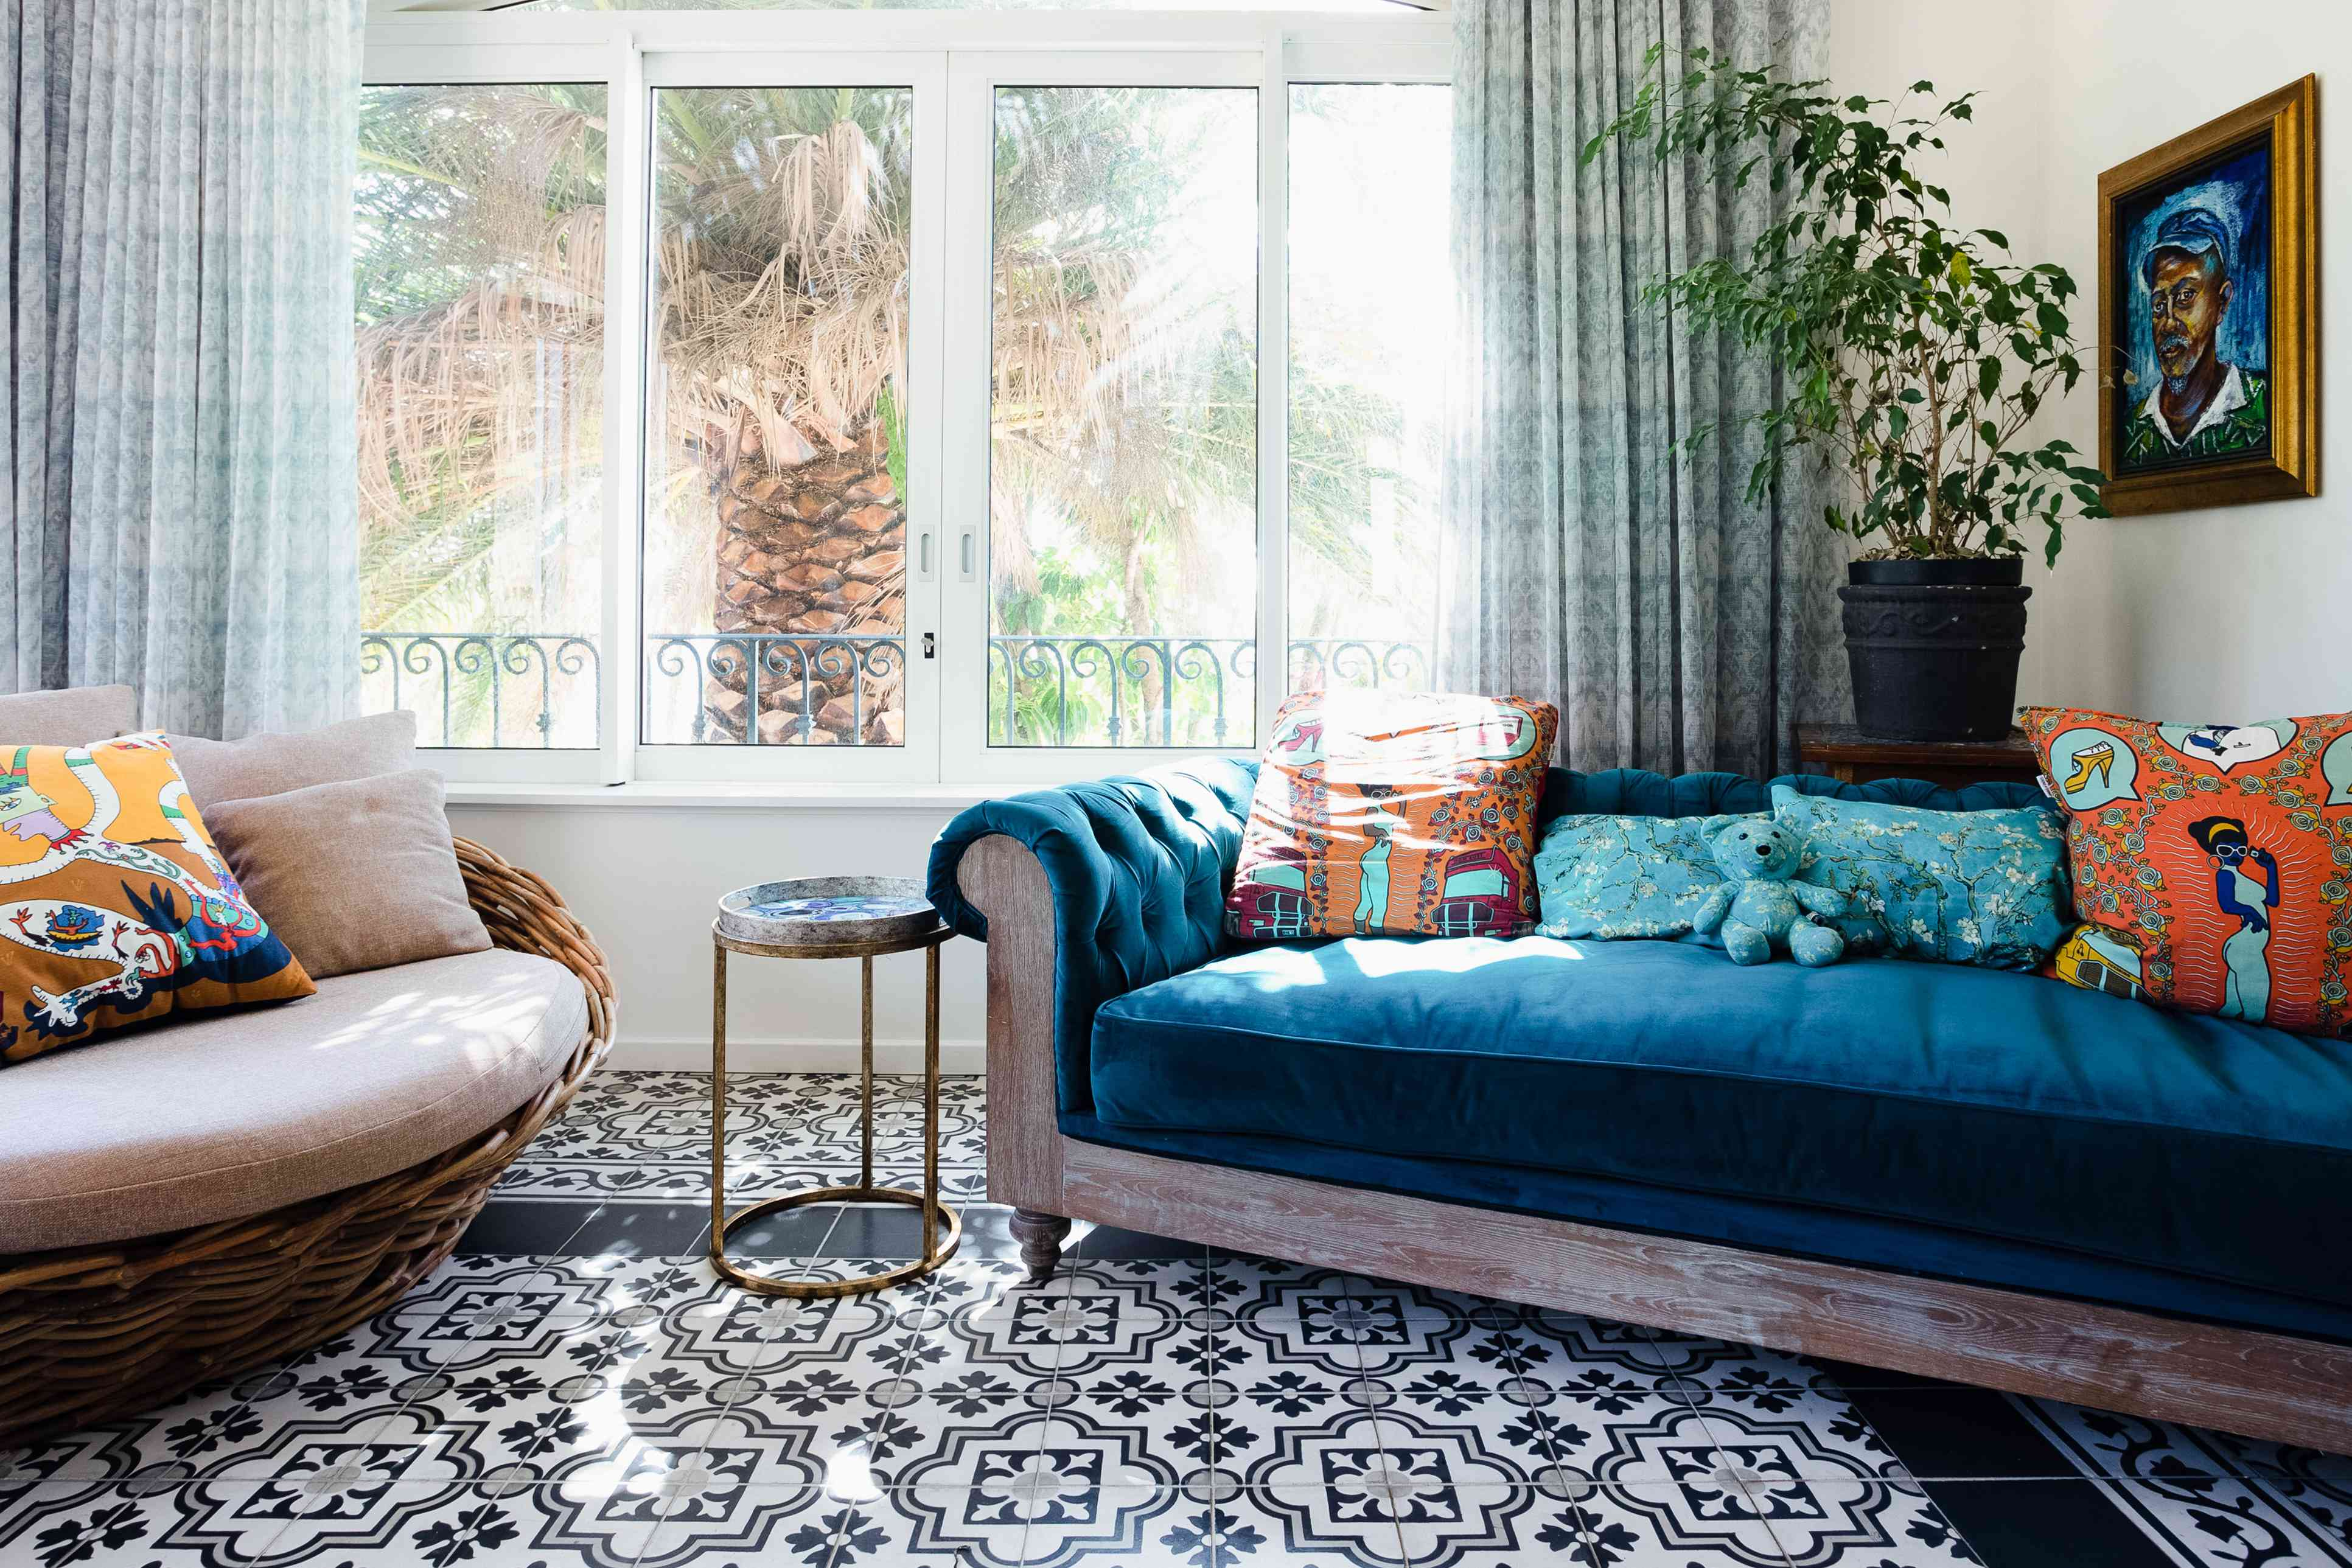 bright colors and multiple patterns are elements of maximalism